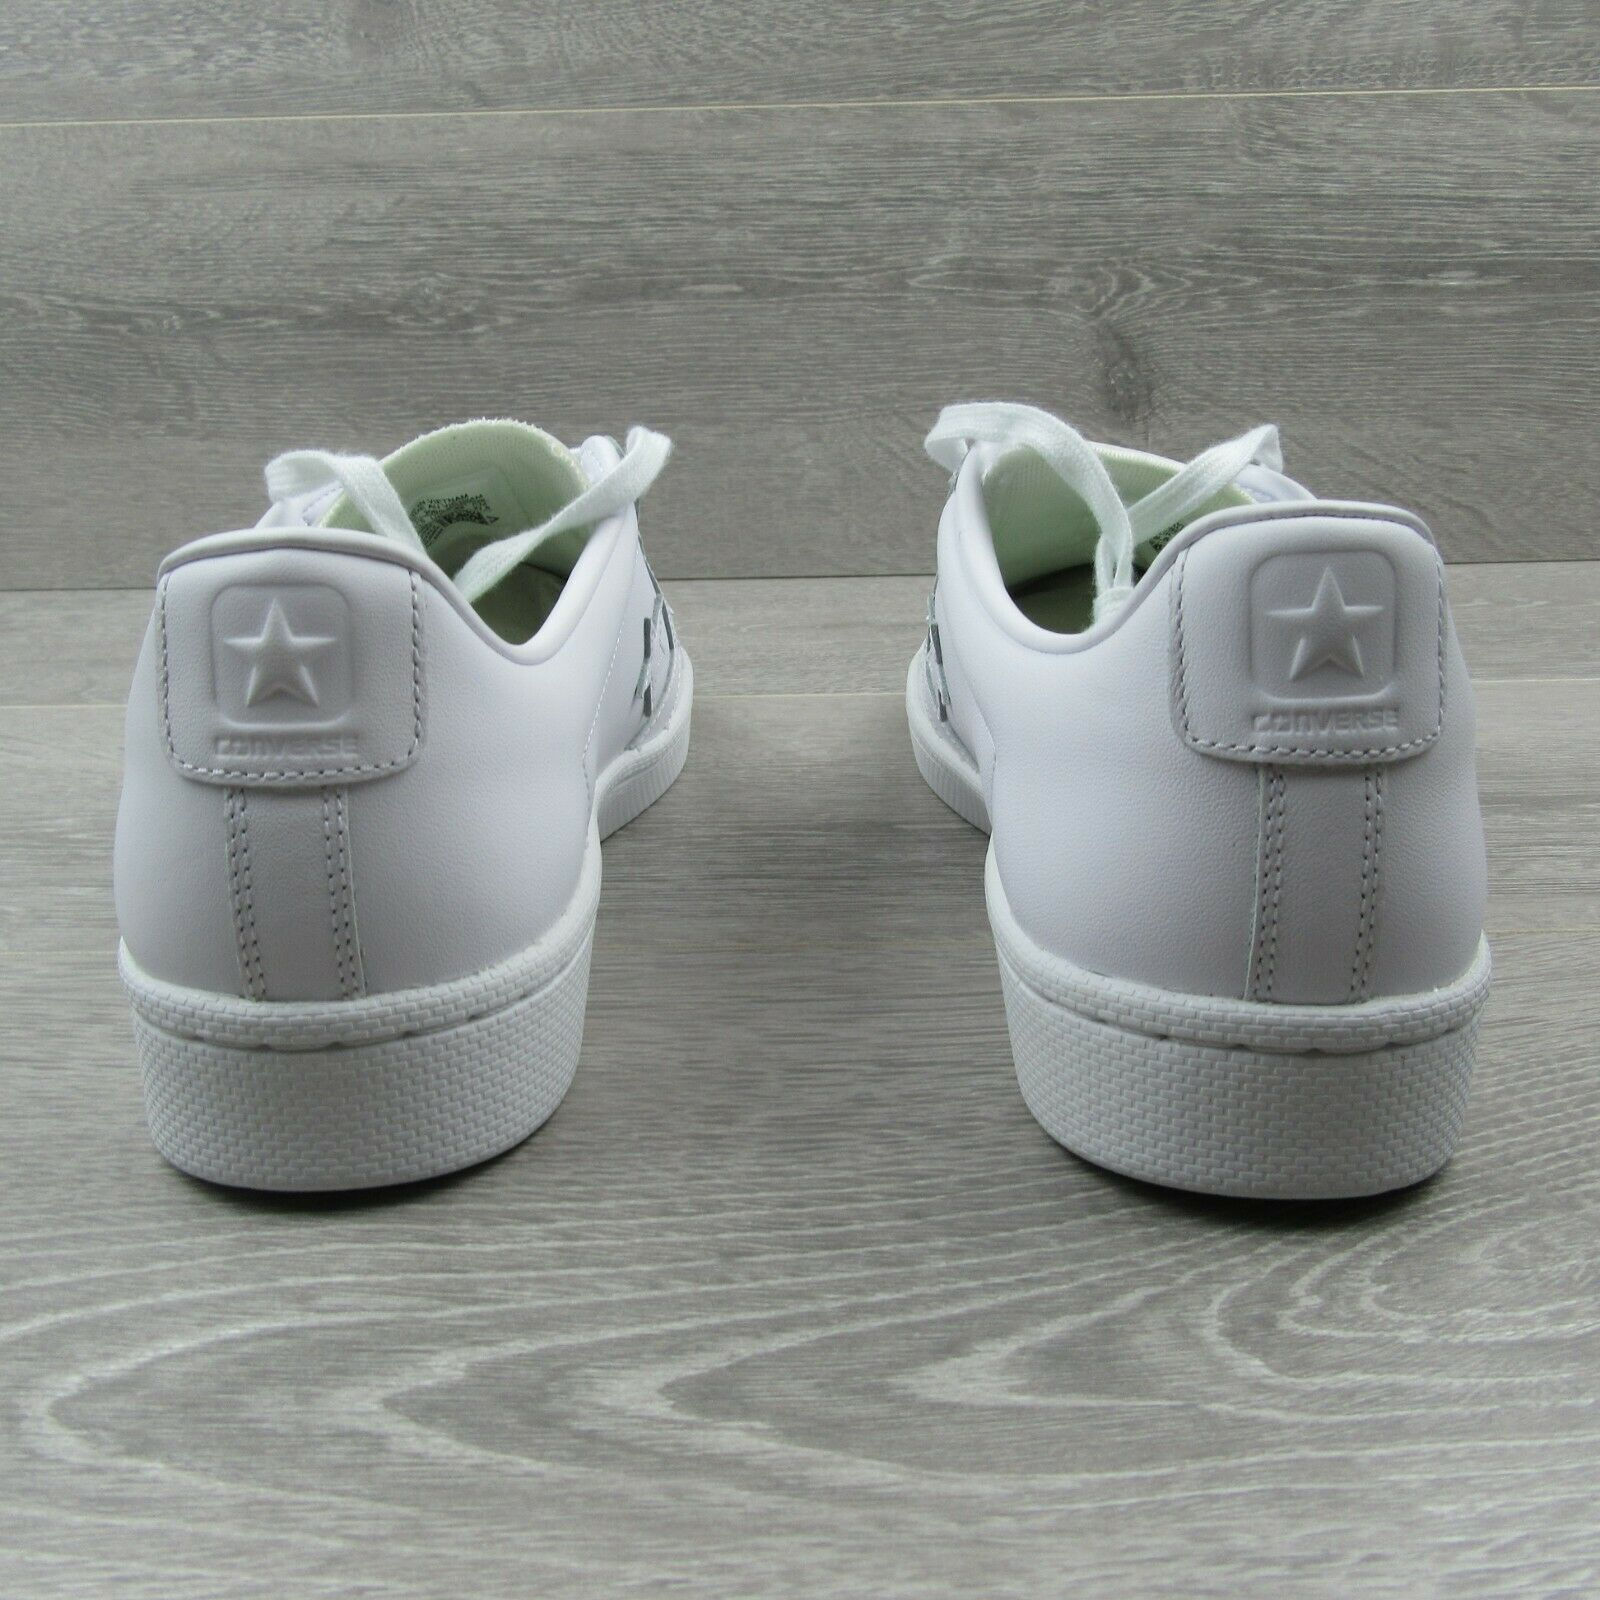 Converse Pro Leather Ox Low Triple White Shoes Size 11 Mens 155319C New image 7